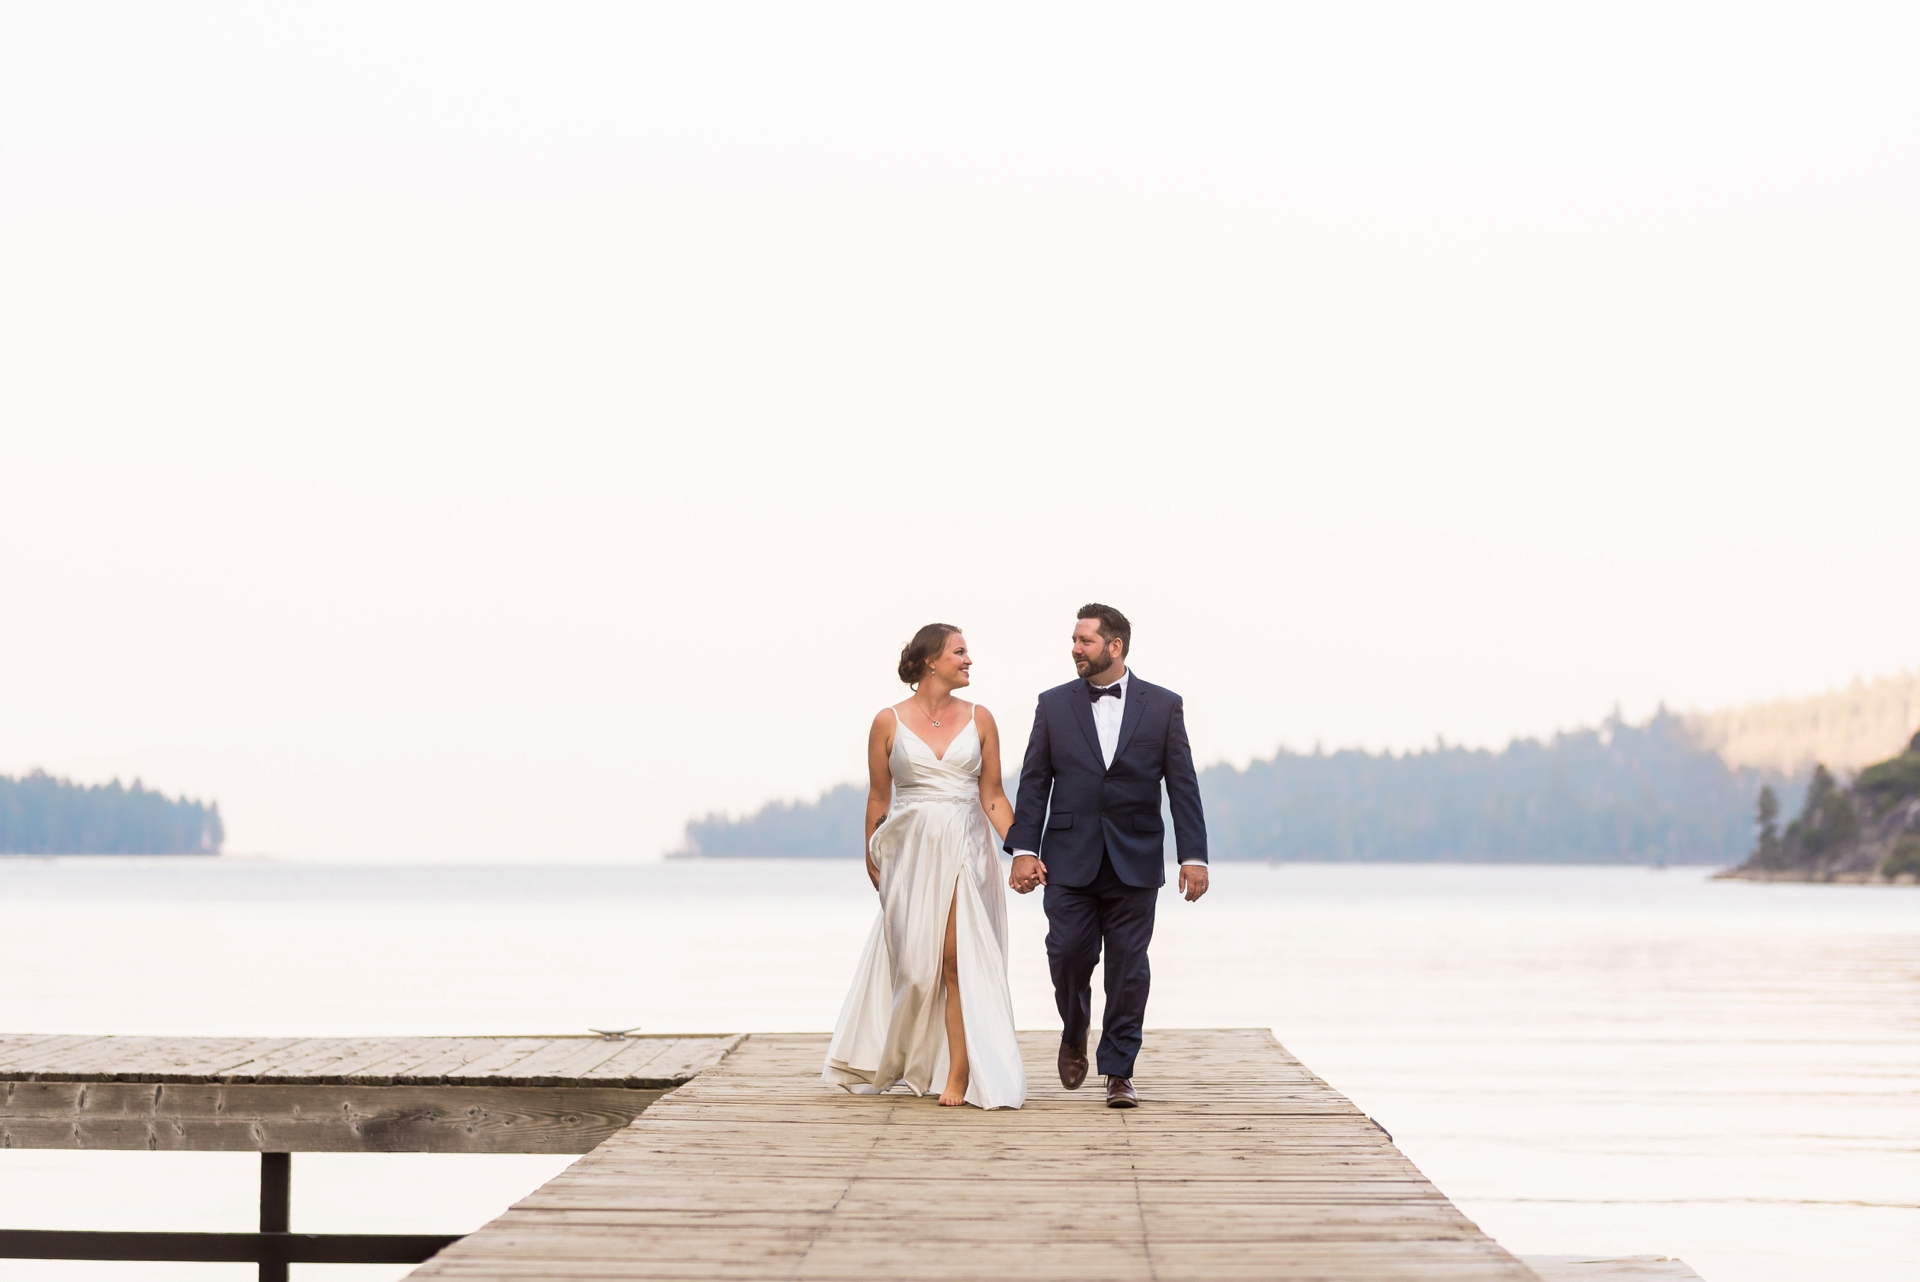 Dock Portrait after a Wedding at Emerald Bay State Park | The couple's wedding portrait on the dock